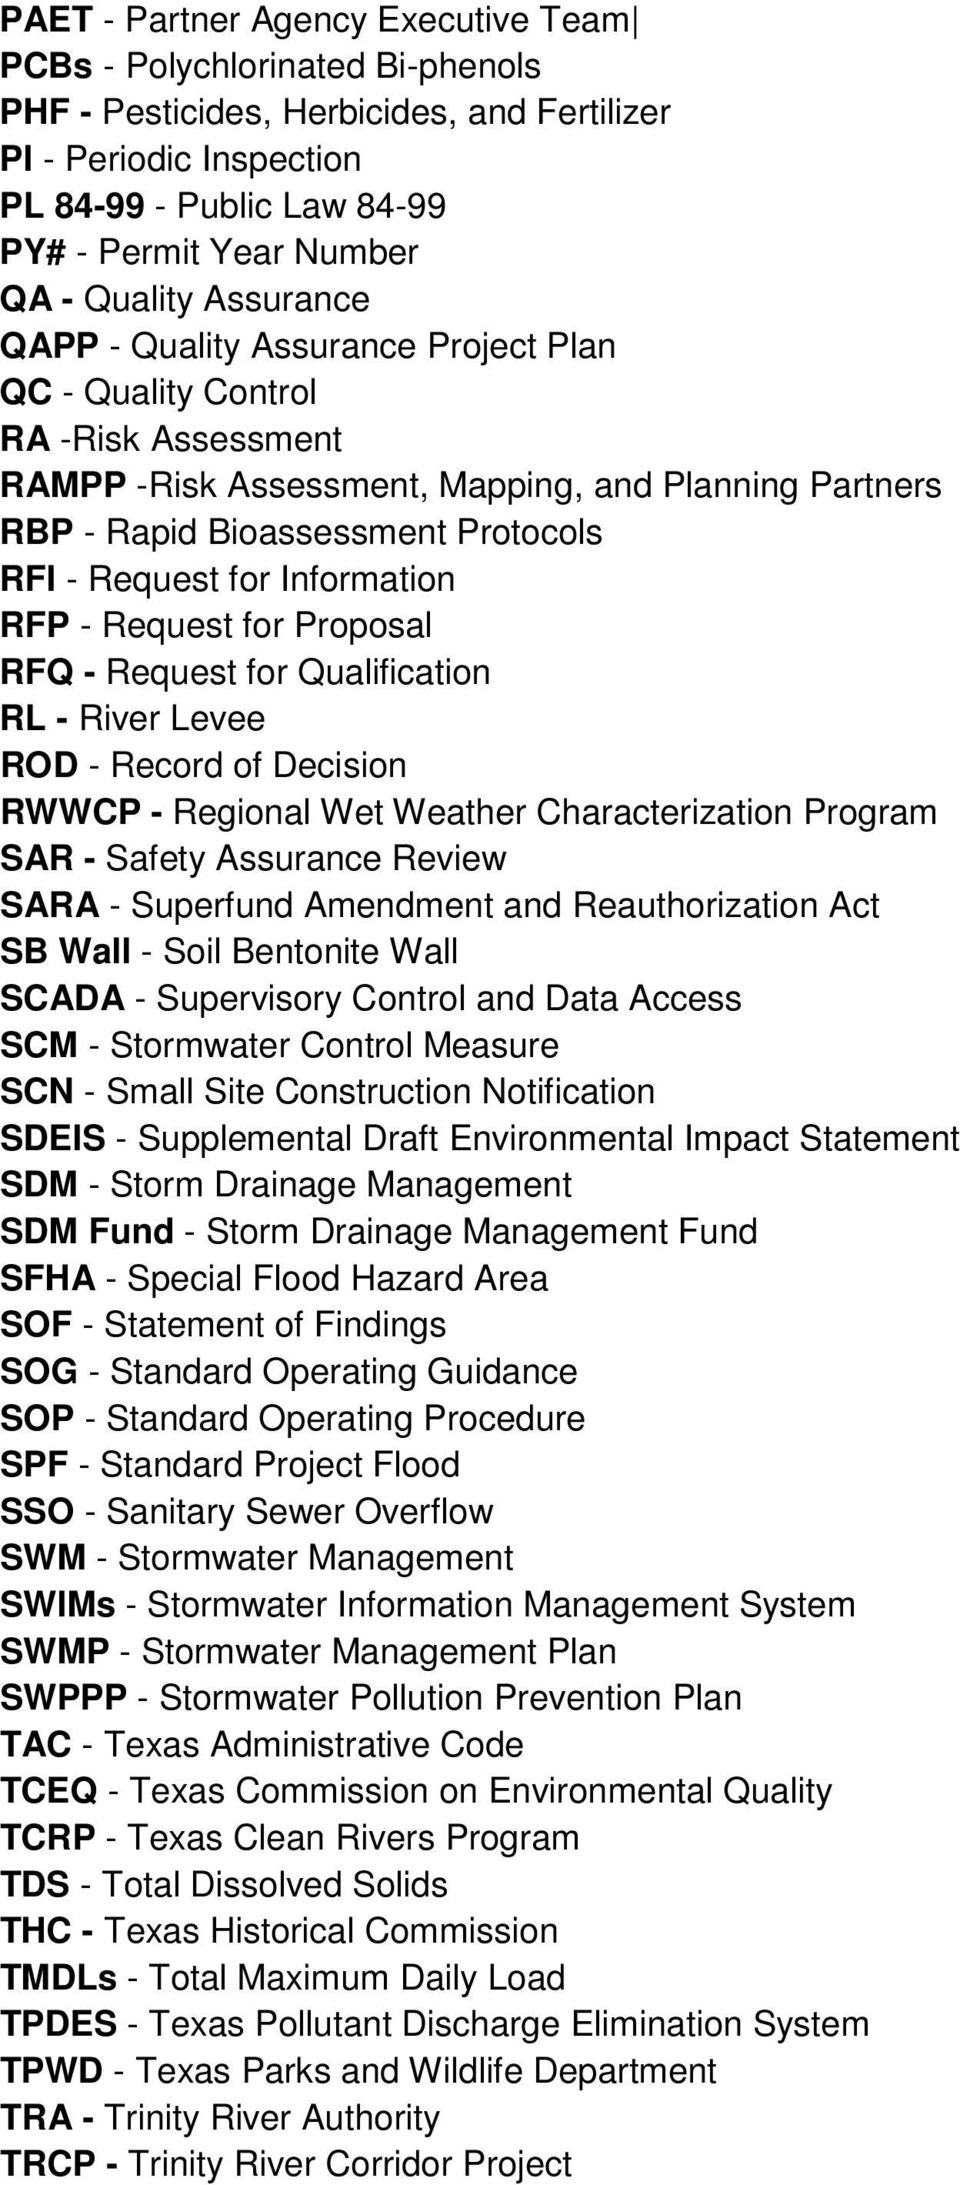 Request for Information RFP - Request for Proposal RFQ - Request for Qualification RL - River Levee ROD - Record of Decision RWWCP - Regional Wet Weather Characterization Program SAR - Safety